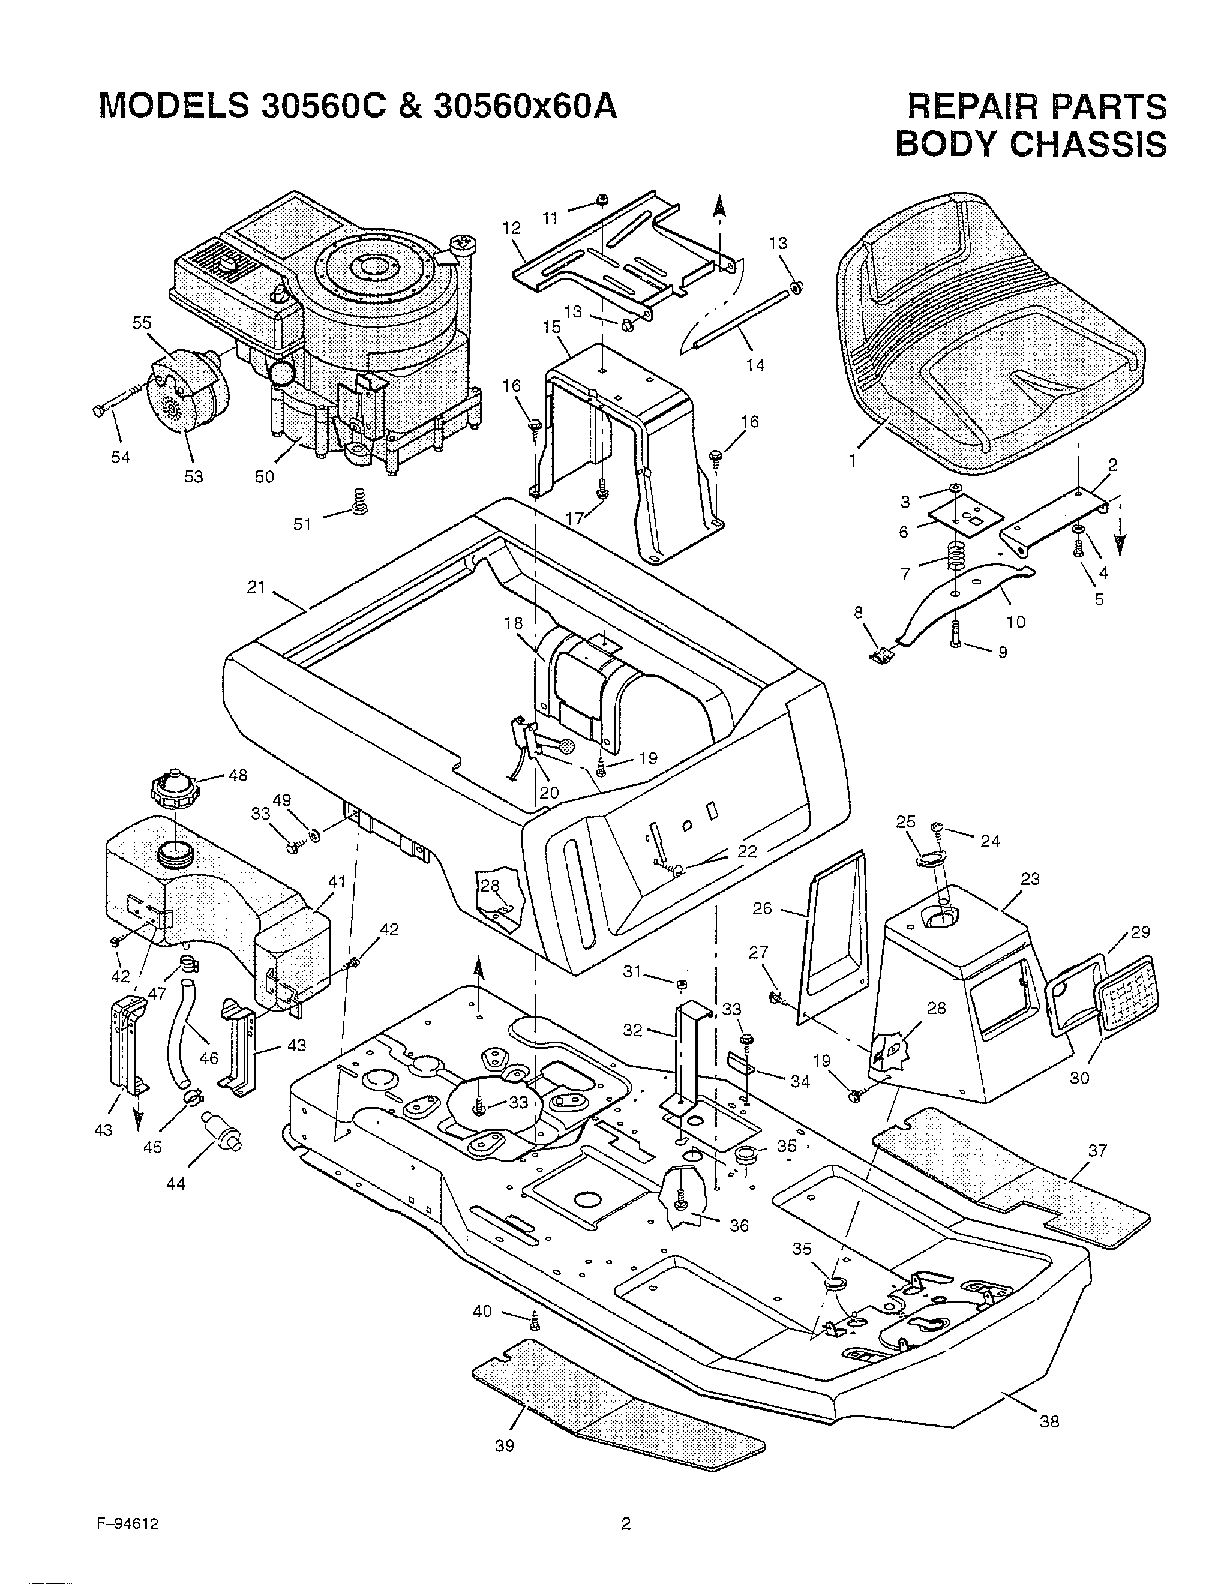 BODY CHASSIS Diagram & Parts List for Model 30560c Murray